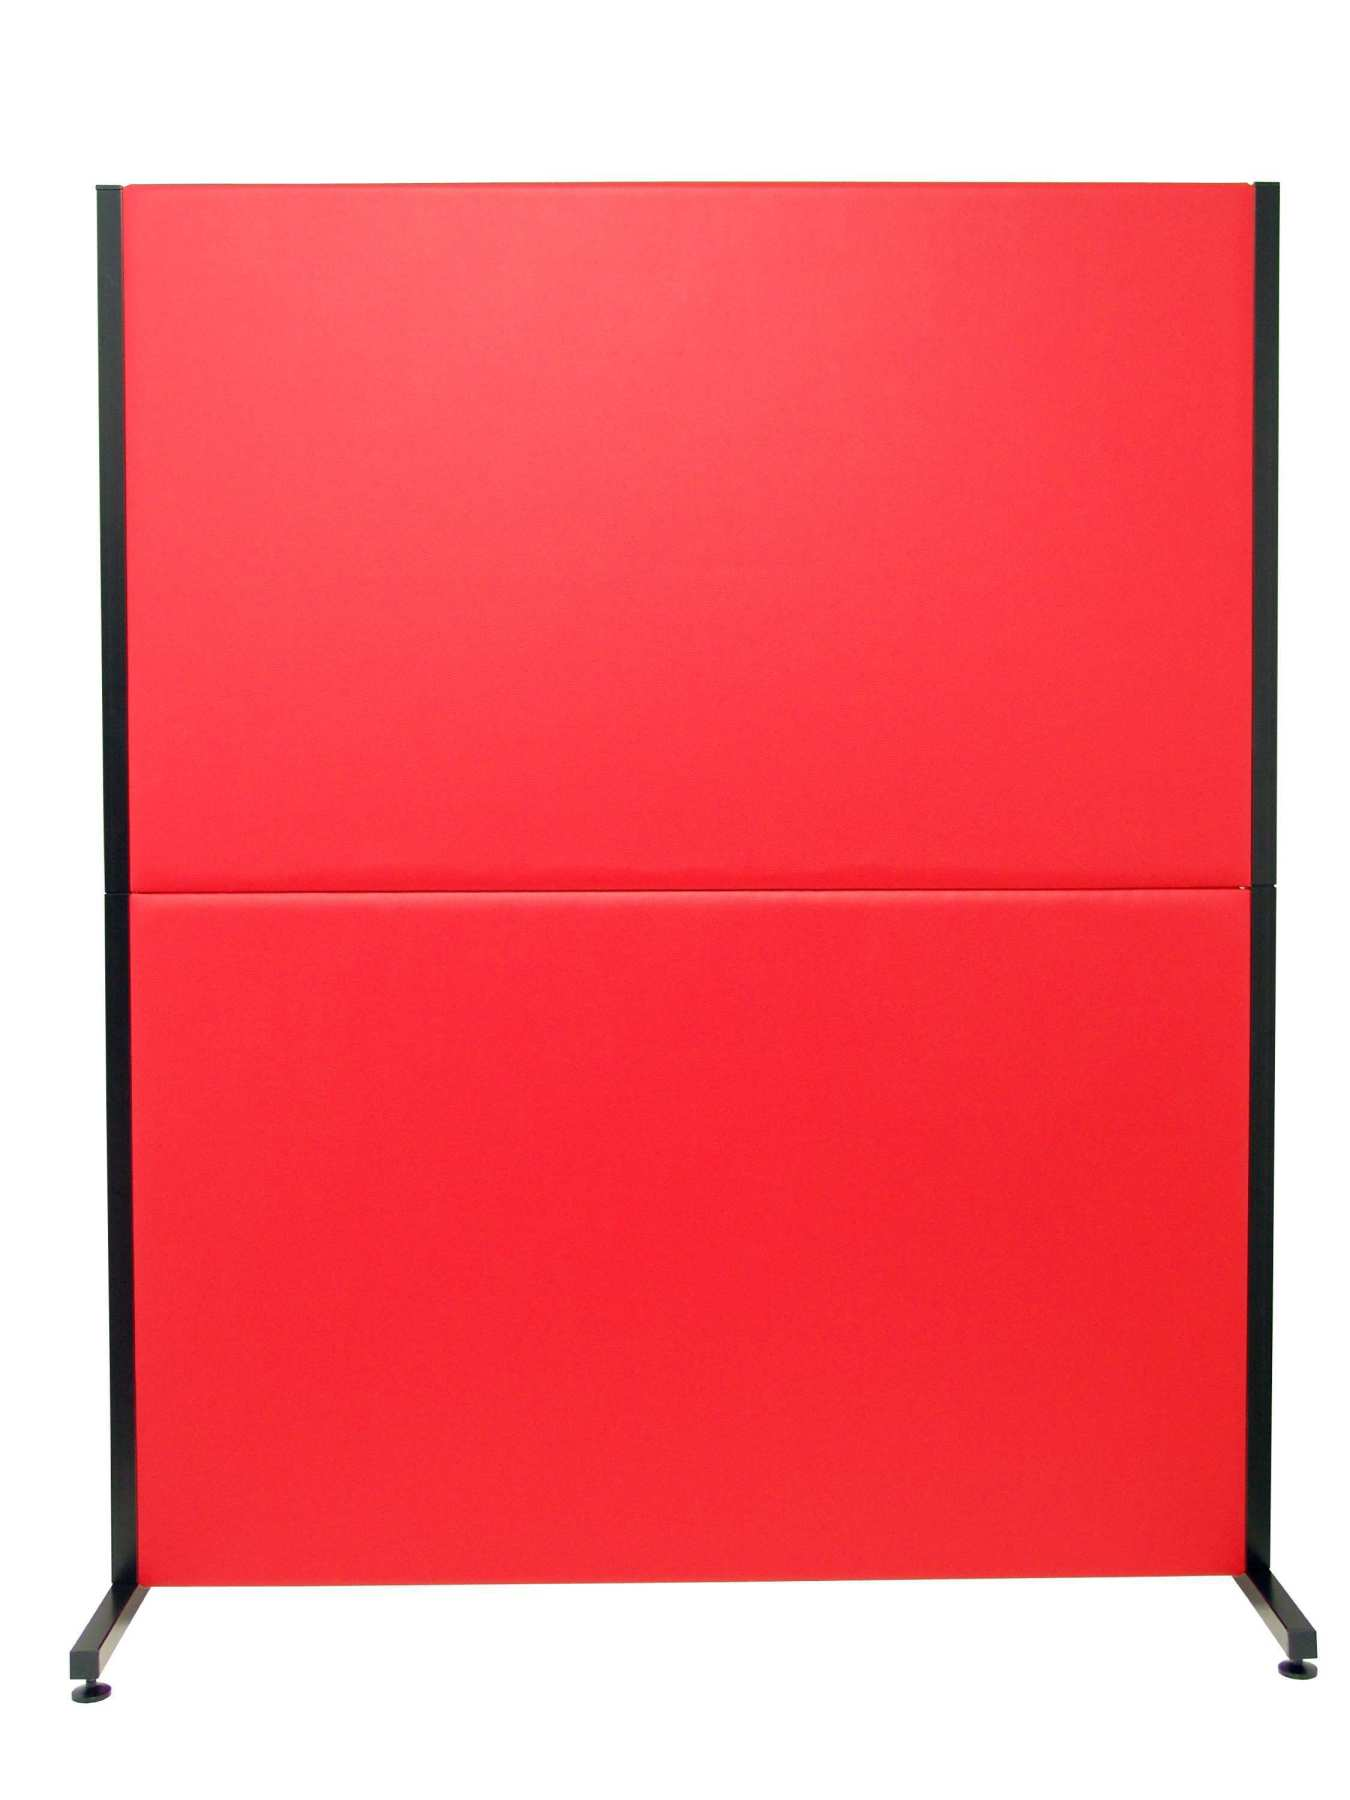 Room Divider Screen For Offices And Work Centres, Detachable And With Color Structure Black-Upholstered In Similpiel